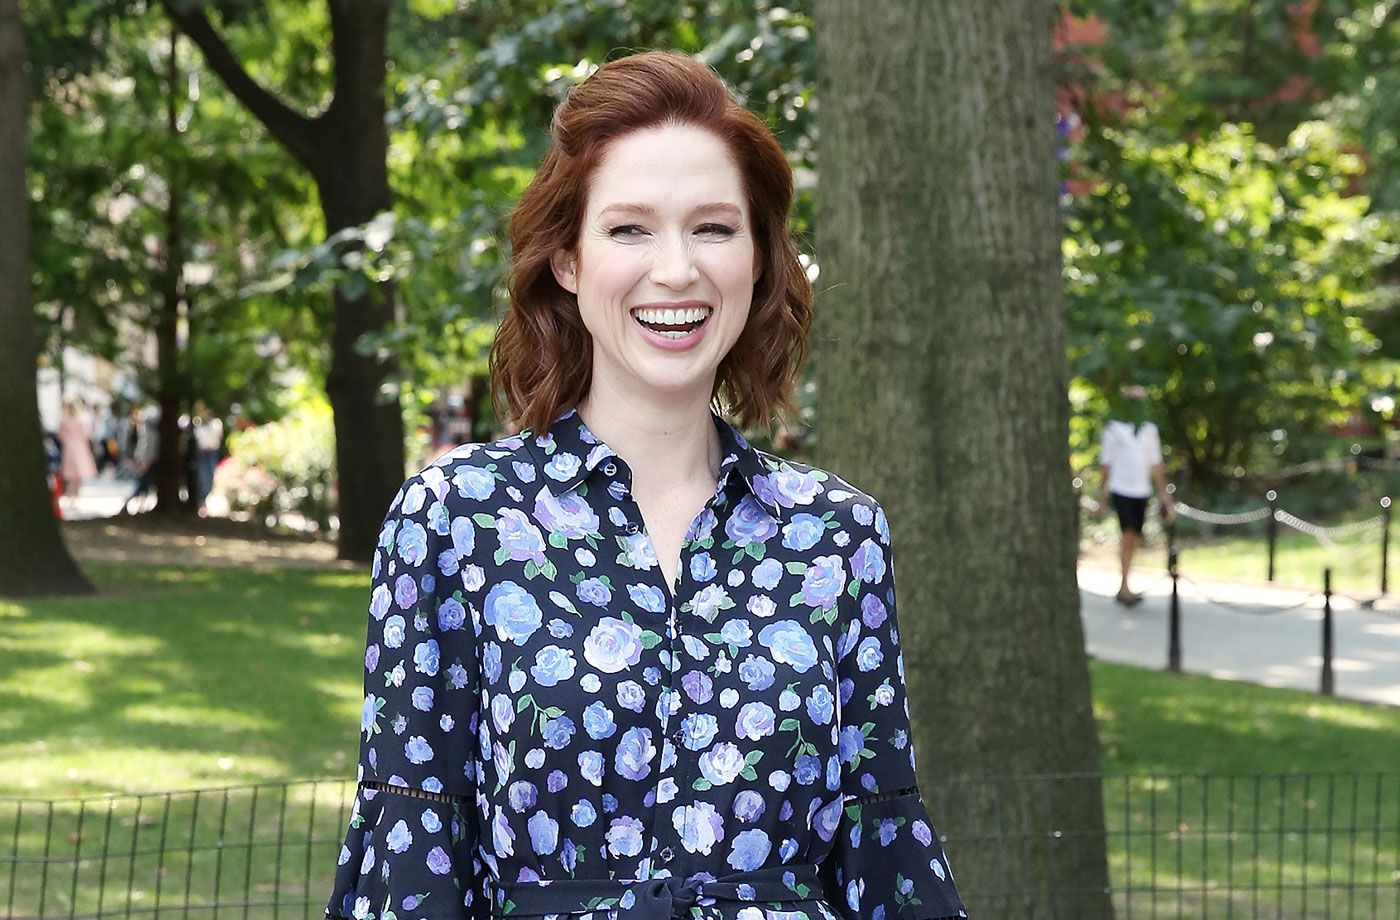 Ellie Kemper waxing poetic about the joy of having the best SoulCycle bike in class is the best thing you'll read today